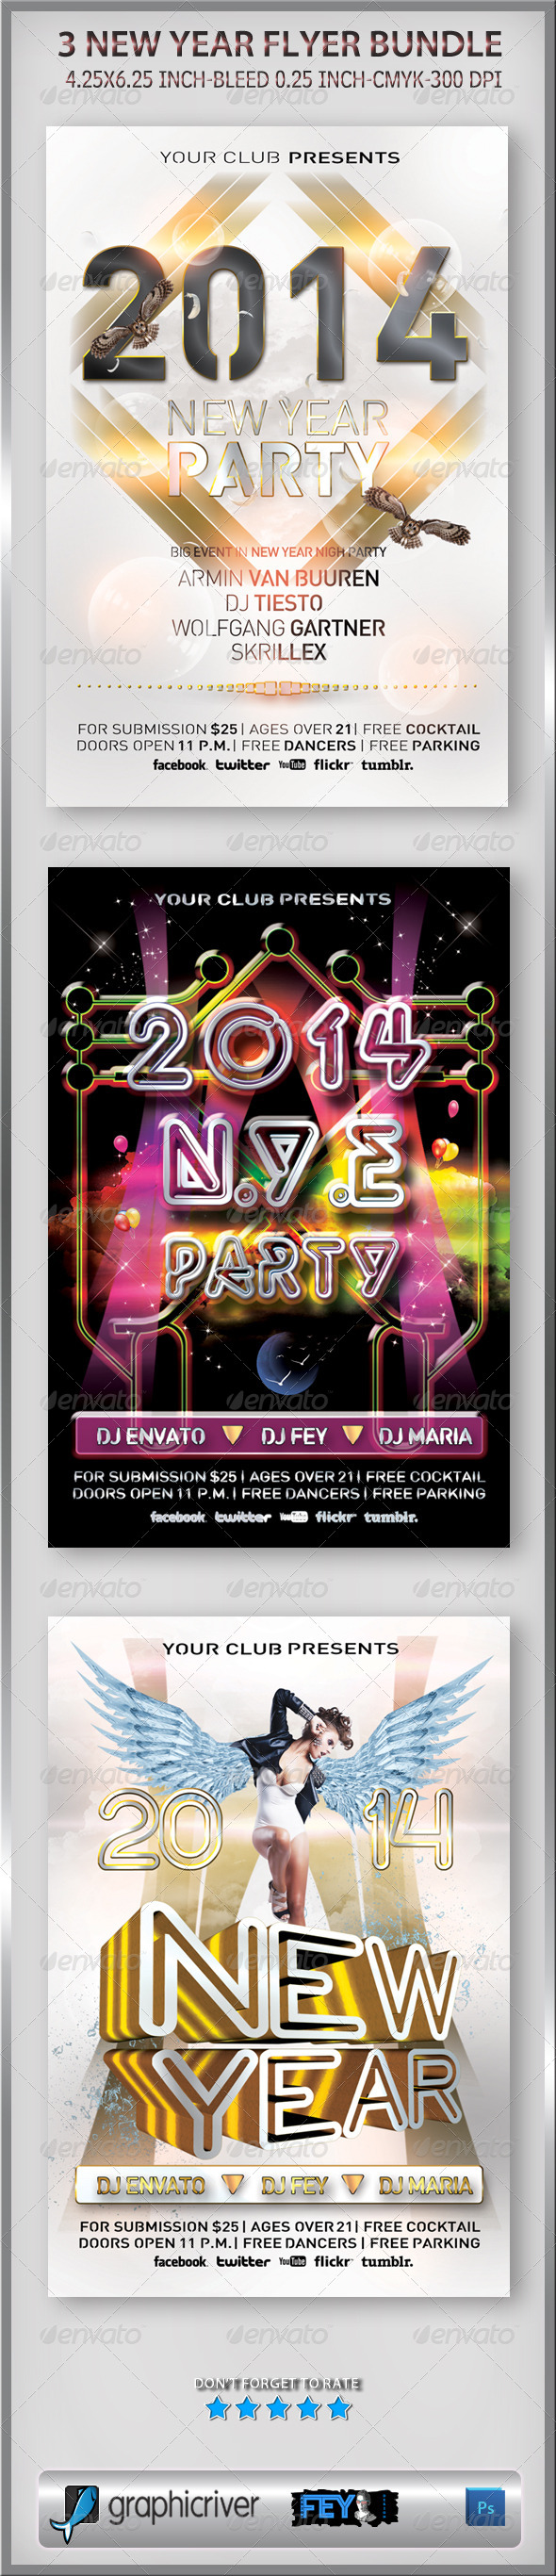 3 New Year Flyer Bundle - Events Flyers